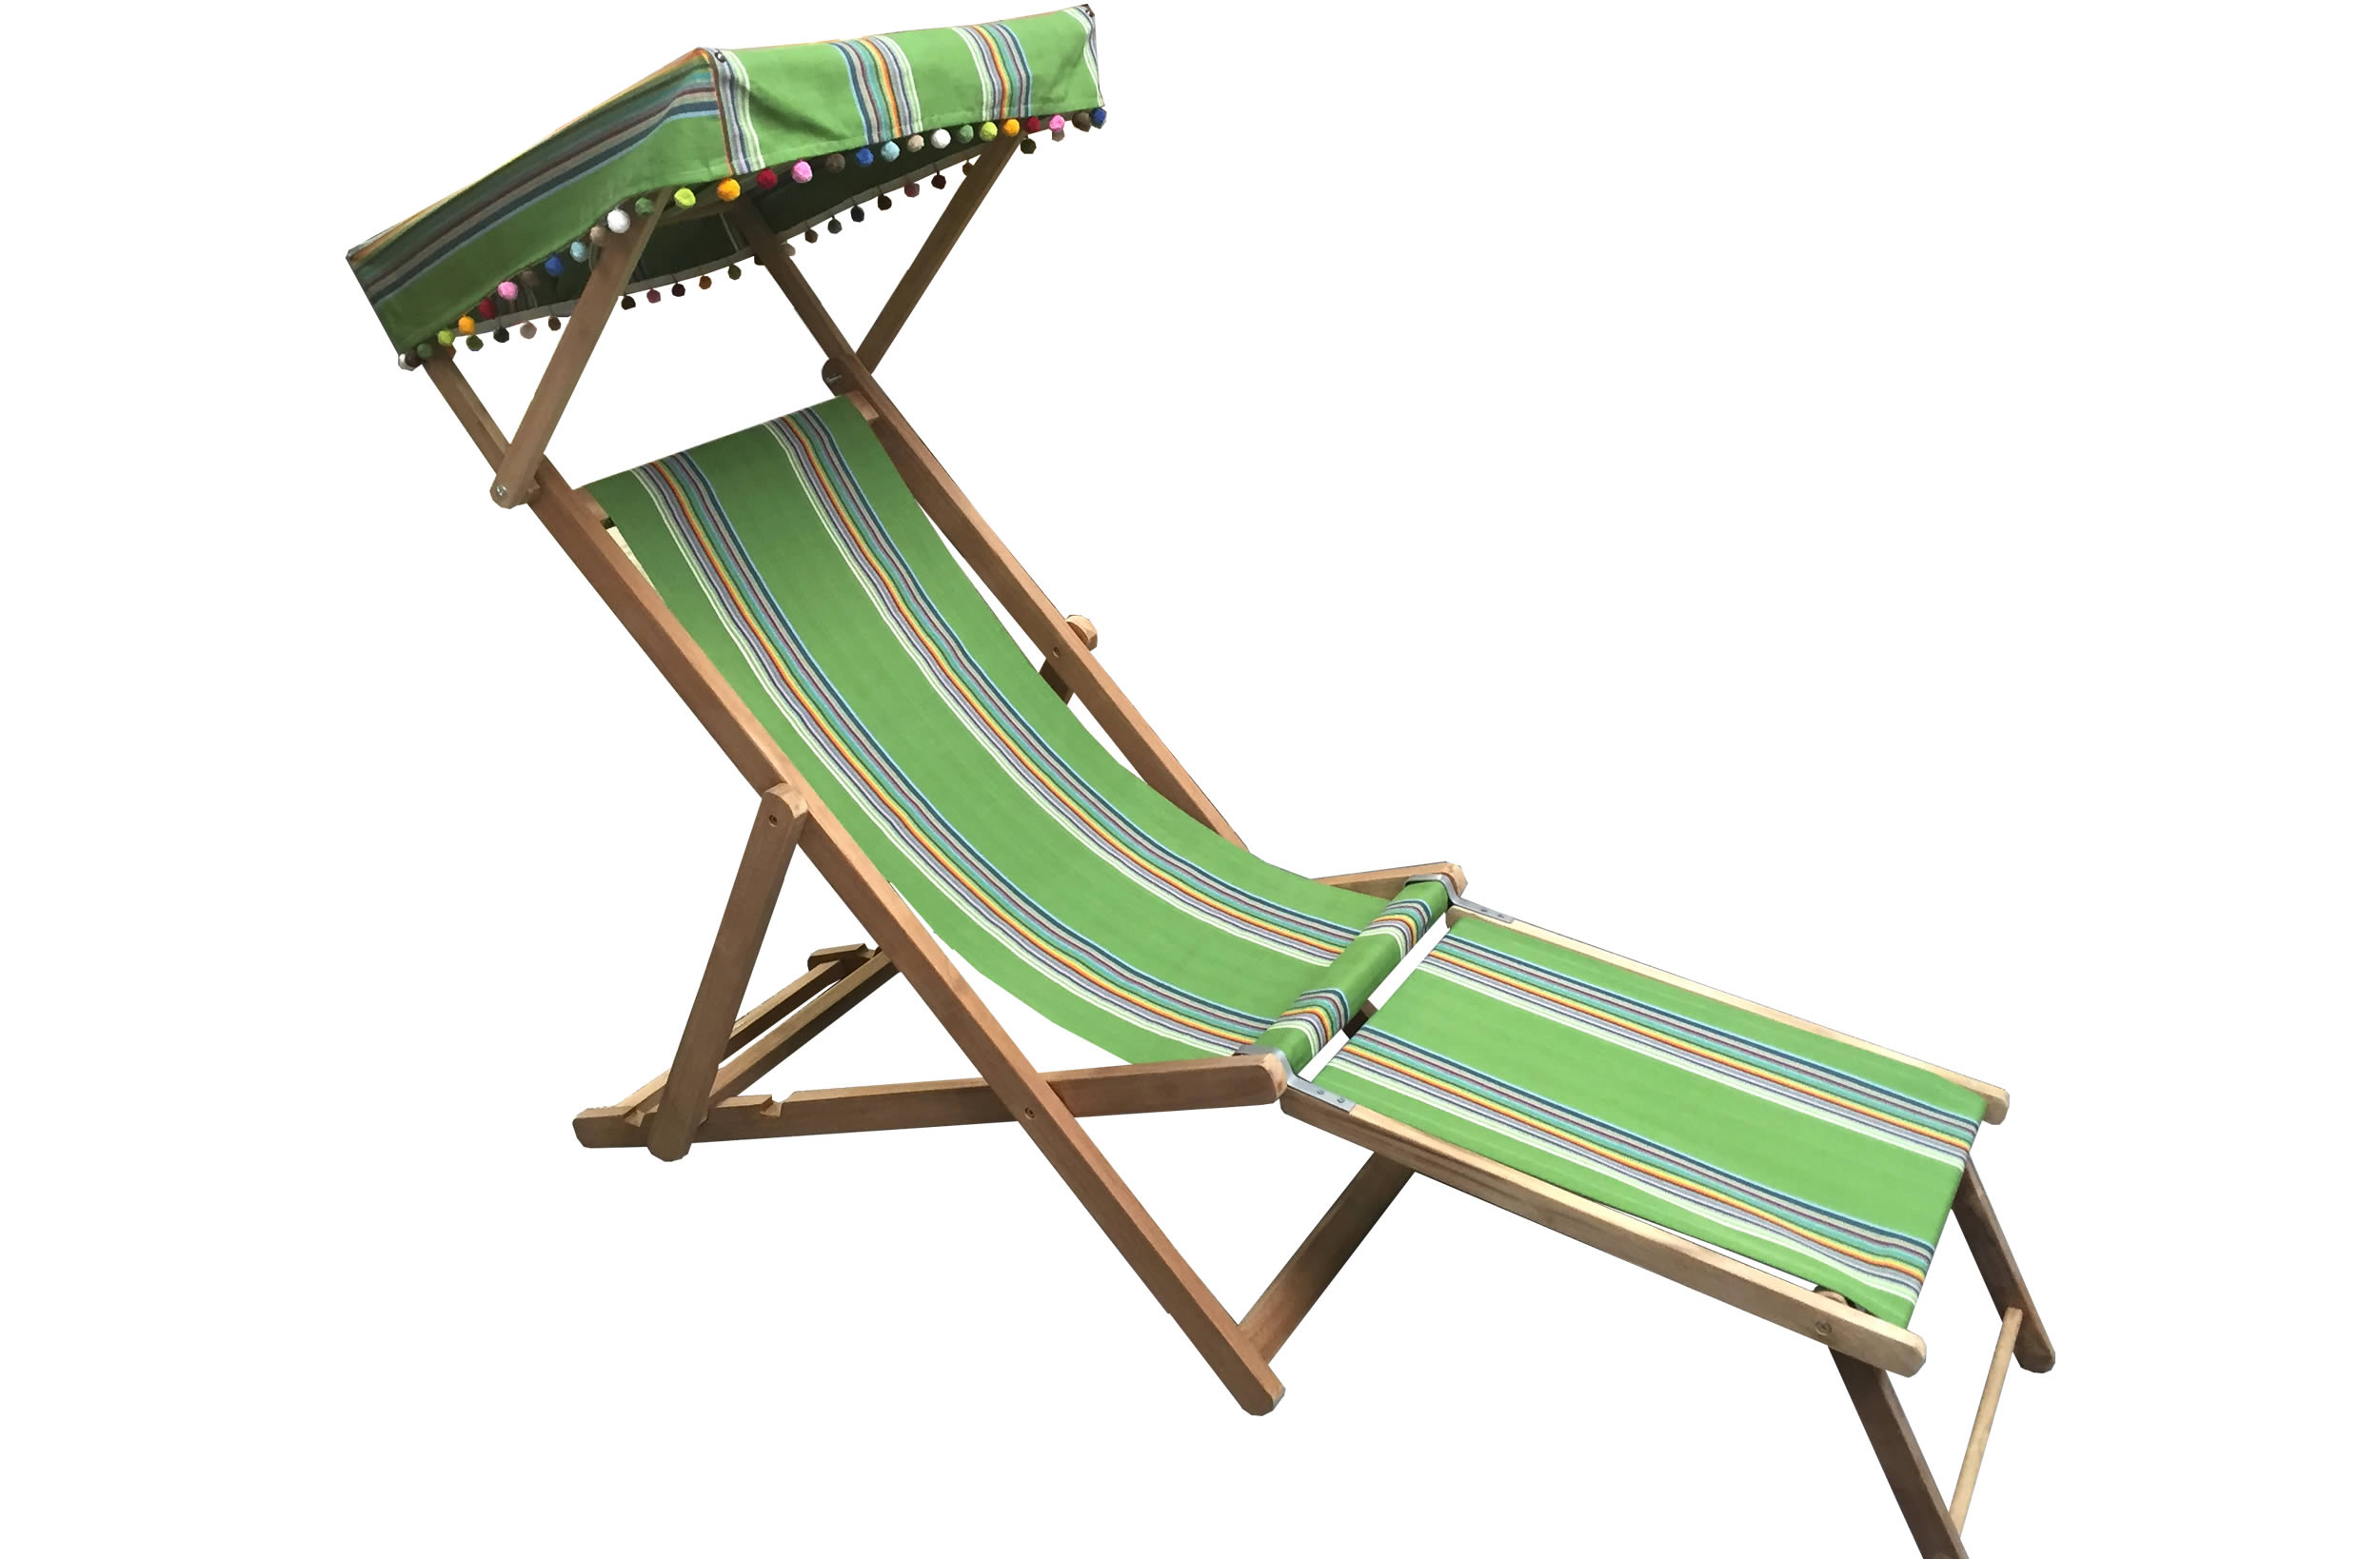 Edwardian Deckchairs with Canopy and Footstool green, rainbow